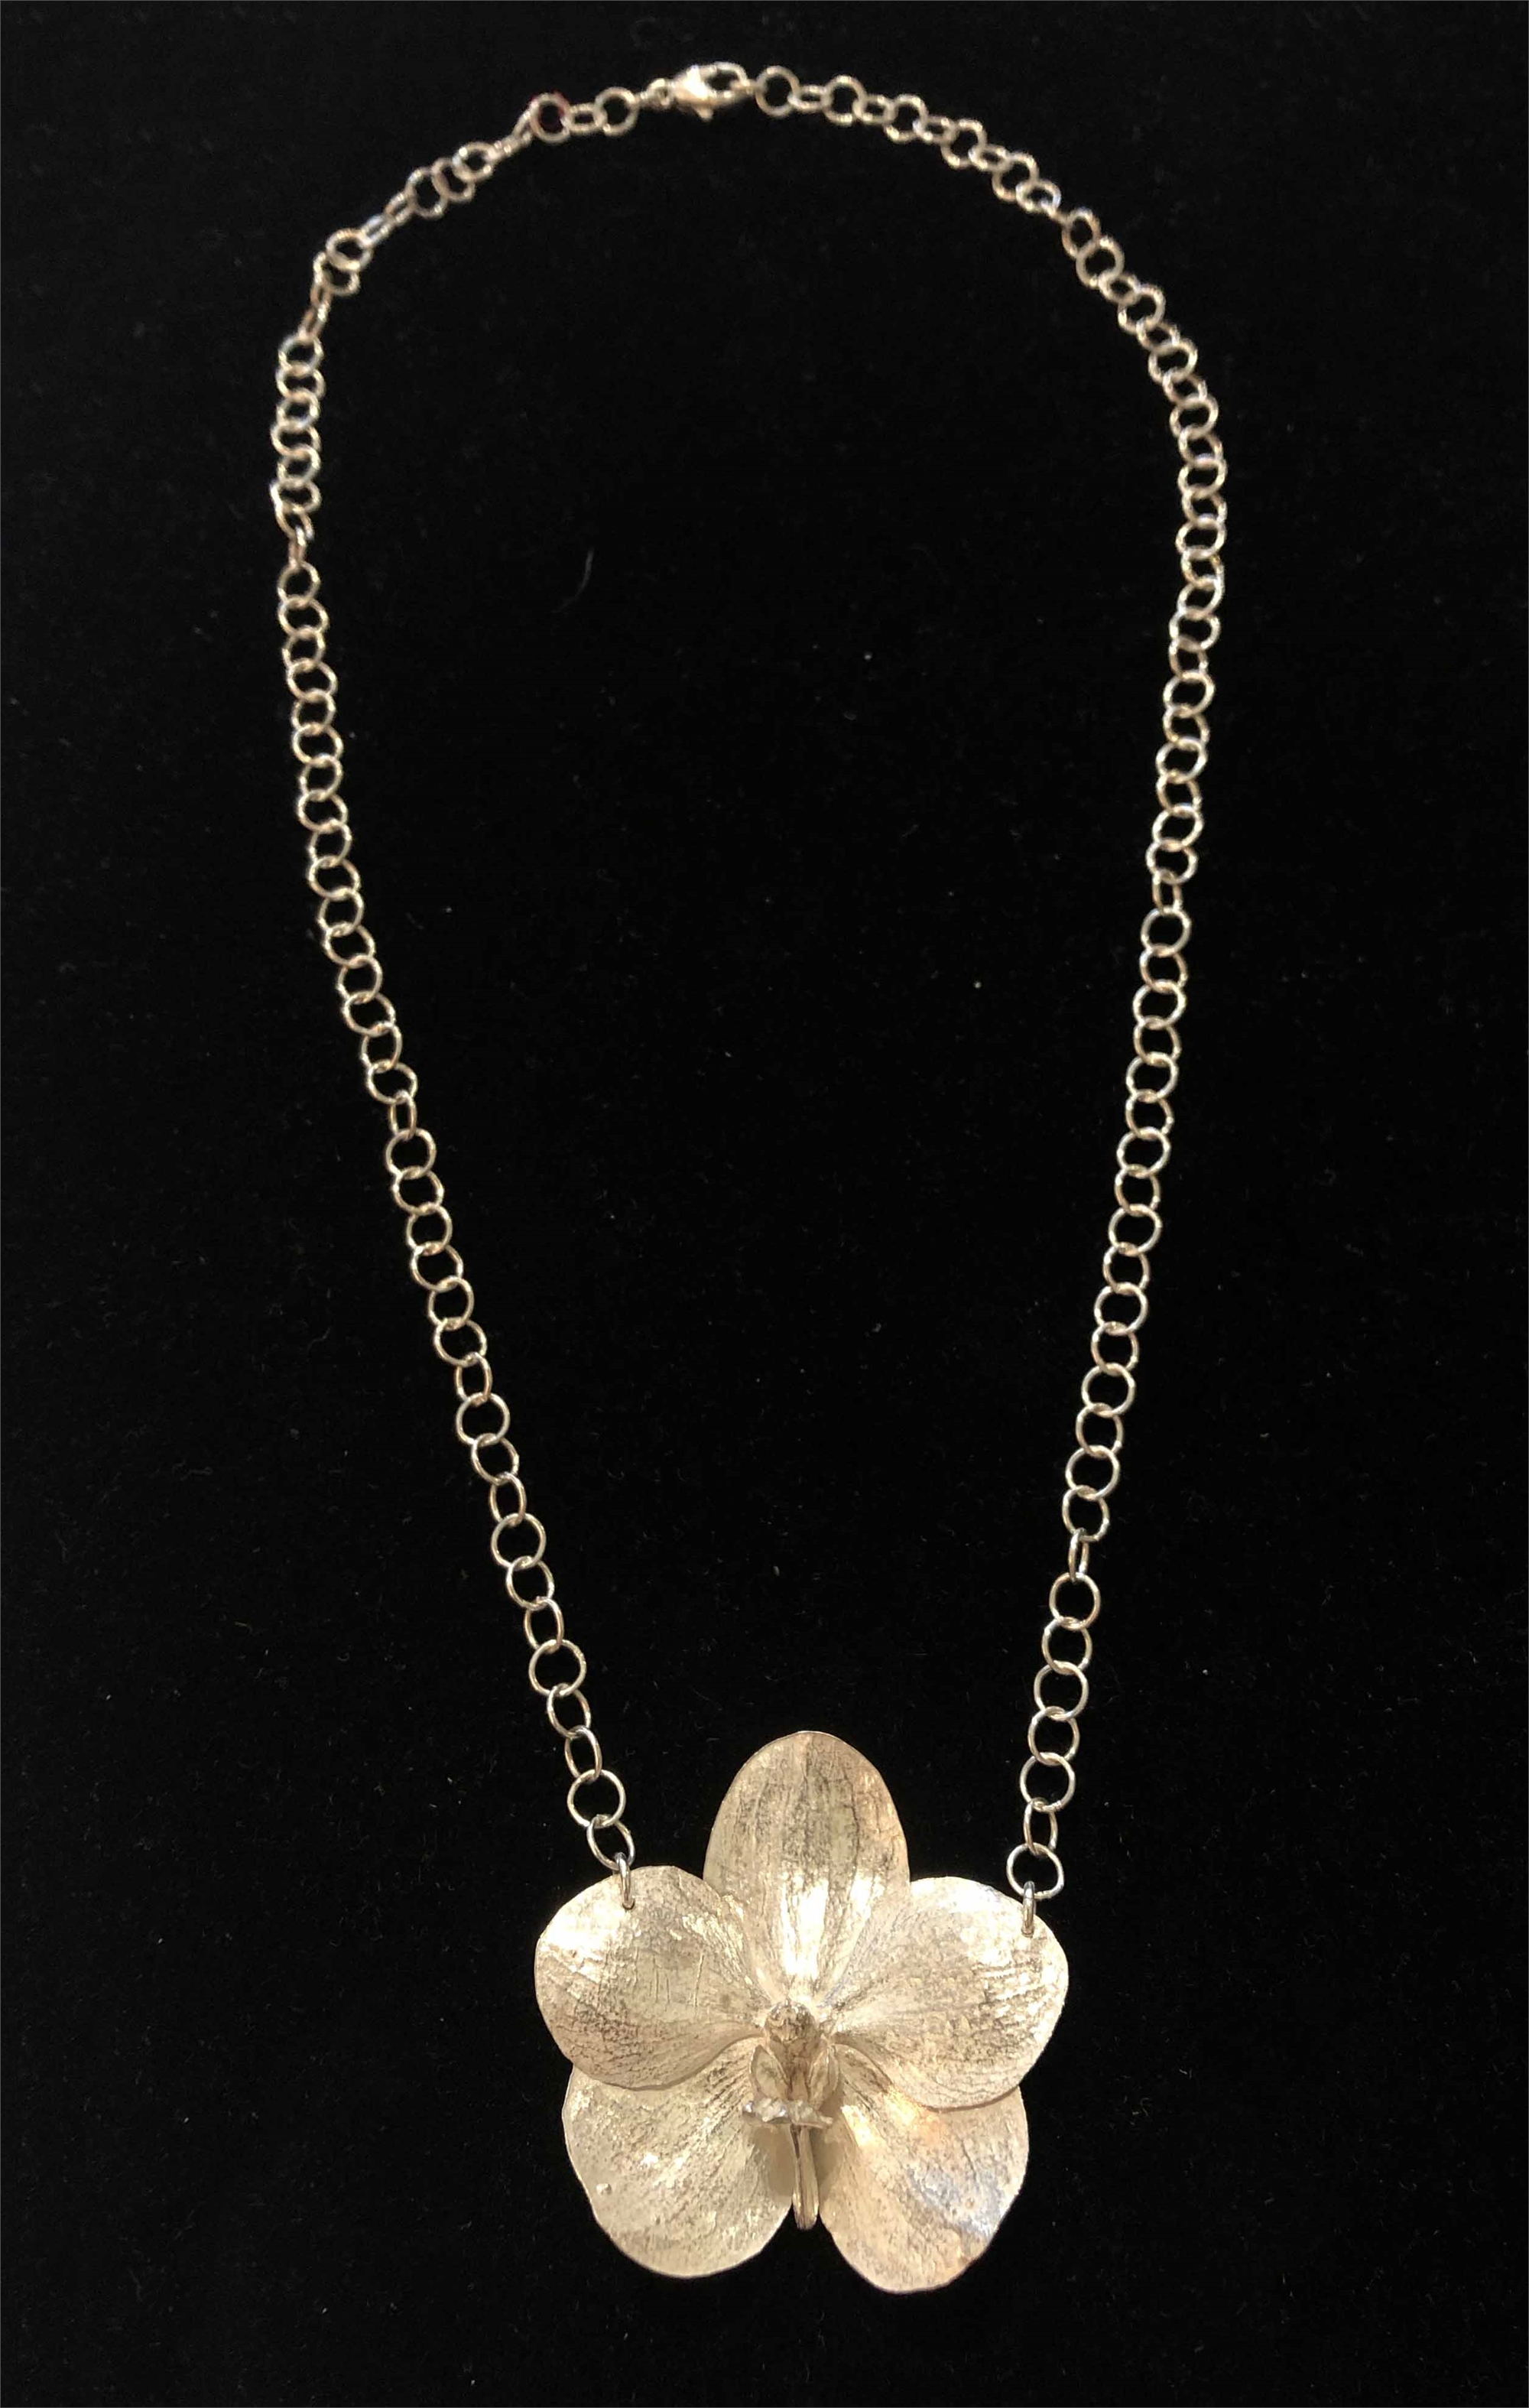 Large Single Sterling Silver Cast Orchid on Chain Necklace by Wayne Keeth